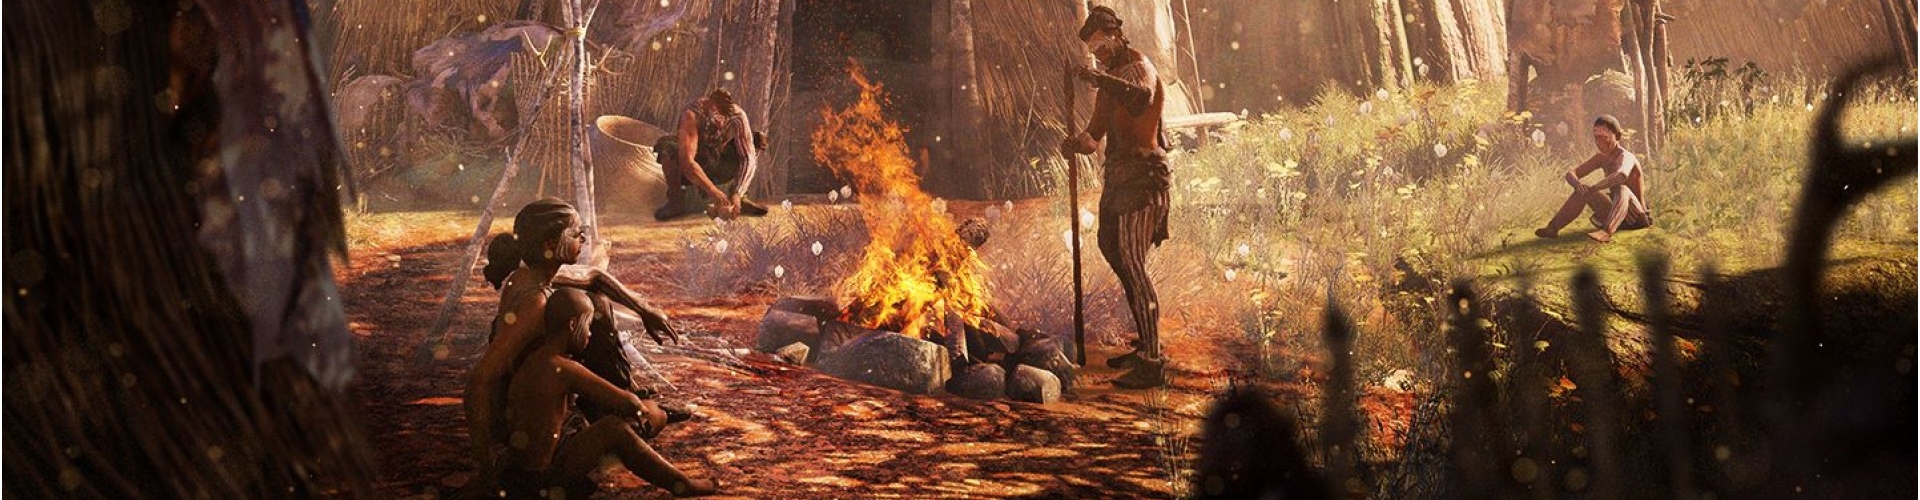 Far Cry Primal: Vorschau mit Gameplay-Video zum Steinzeit-Shooter